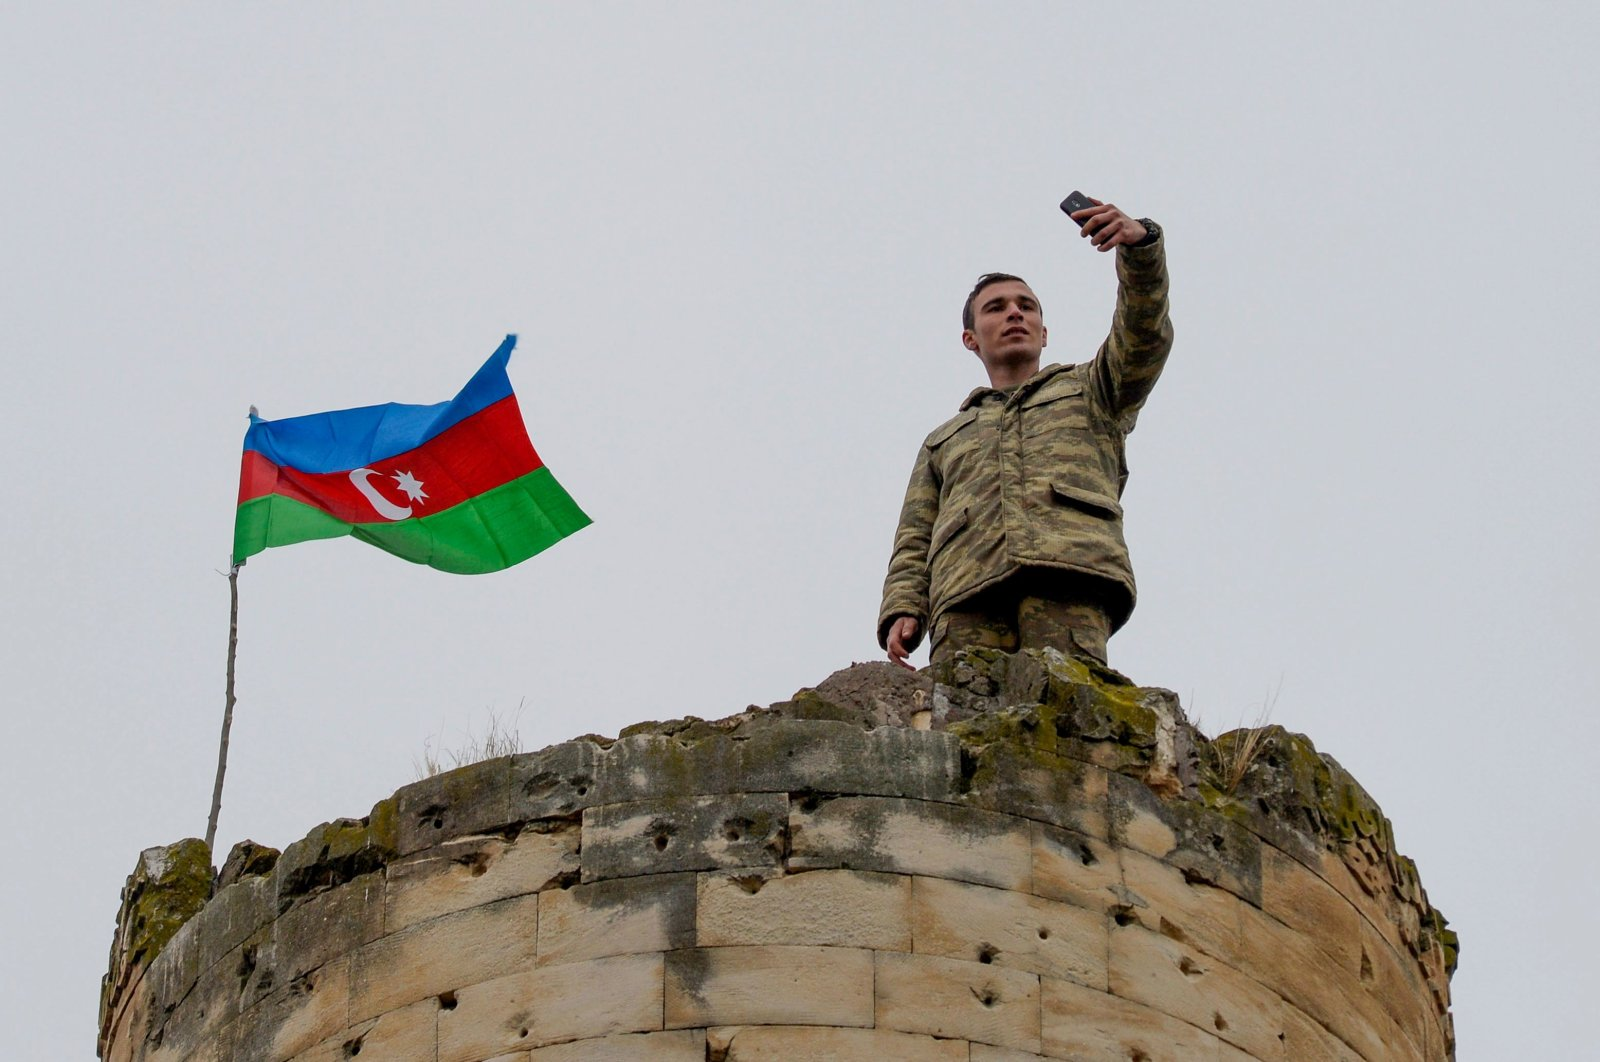 An Azerbaijani soldier takes a selfie with a national flag on the top of a tower outside the town of Fuzuli, Nagorno-Karabakh, Nov. 26, 2020. (AFP File Photo)